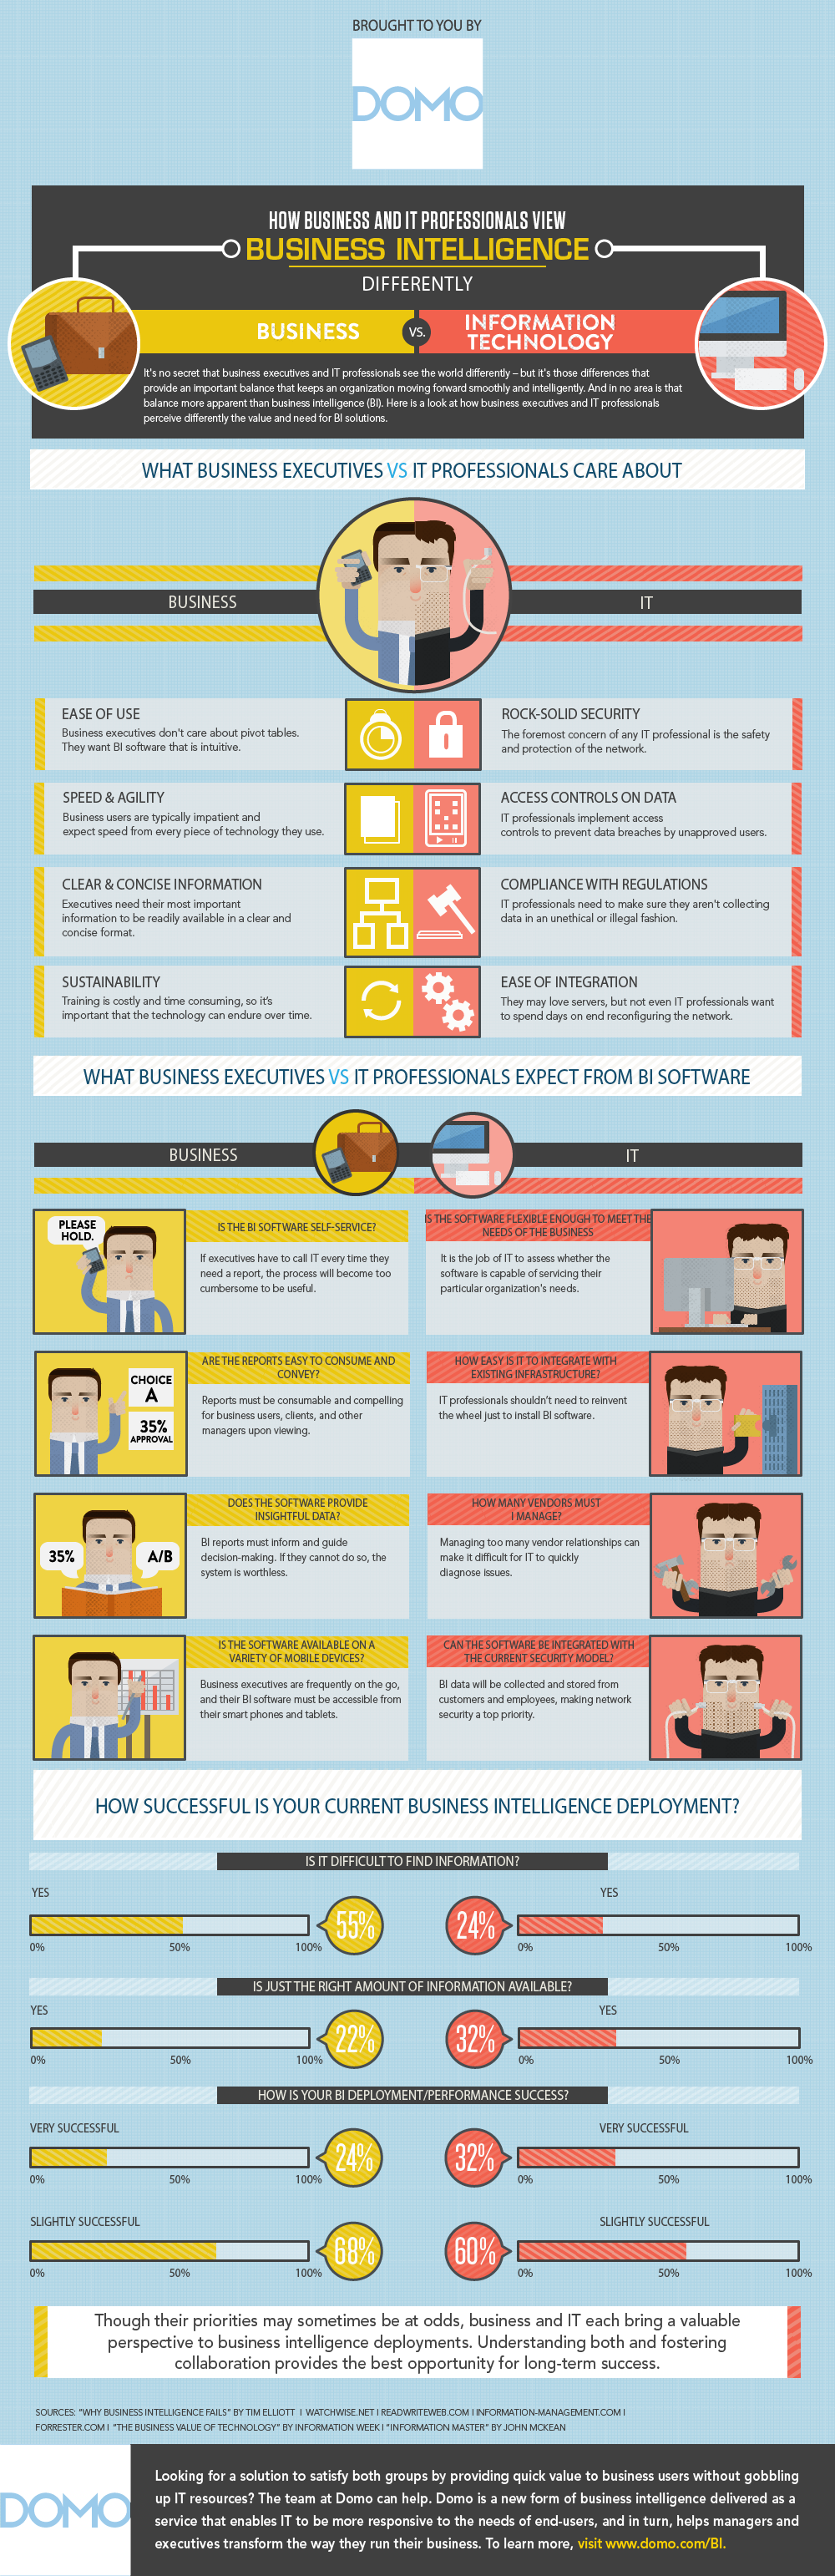 [Infographic] How Business and IT Professionals View BI Differently - YourDailyTech